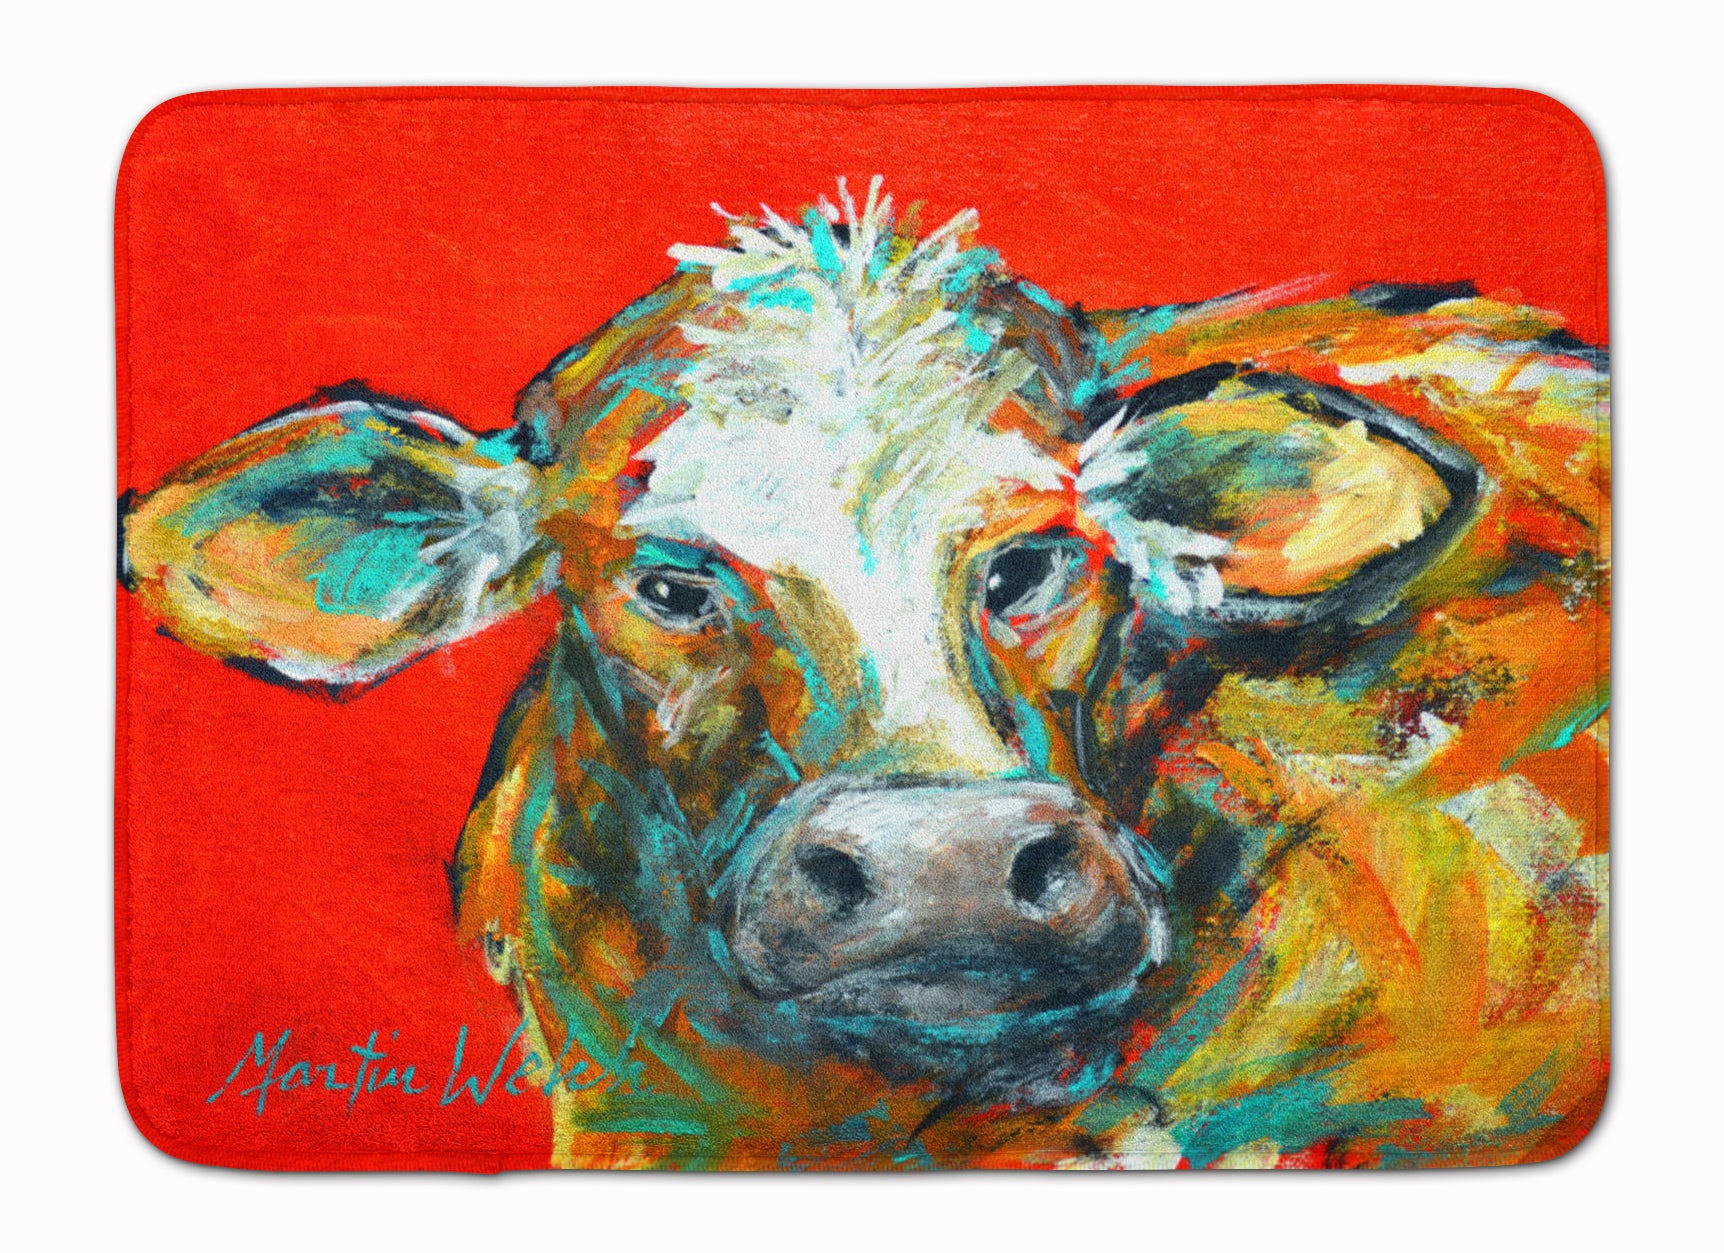 Caught Red Handed Cow Machine Washable Memory Foam Mat MW1272RUG by Caroline's Treasures